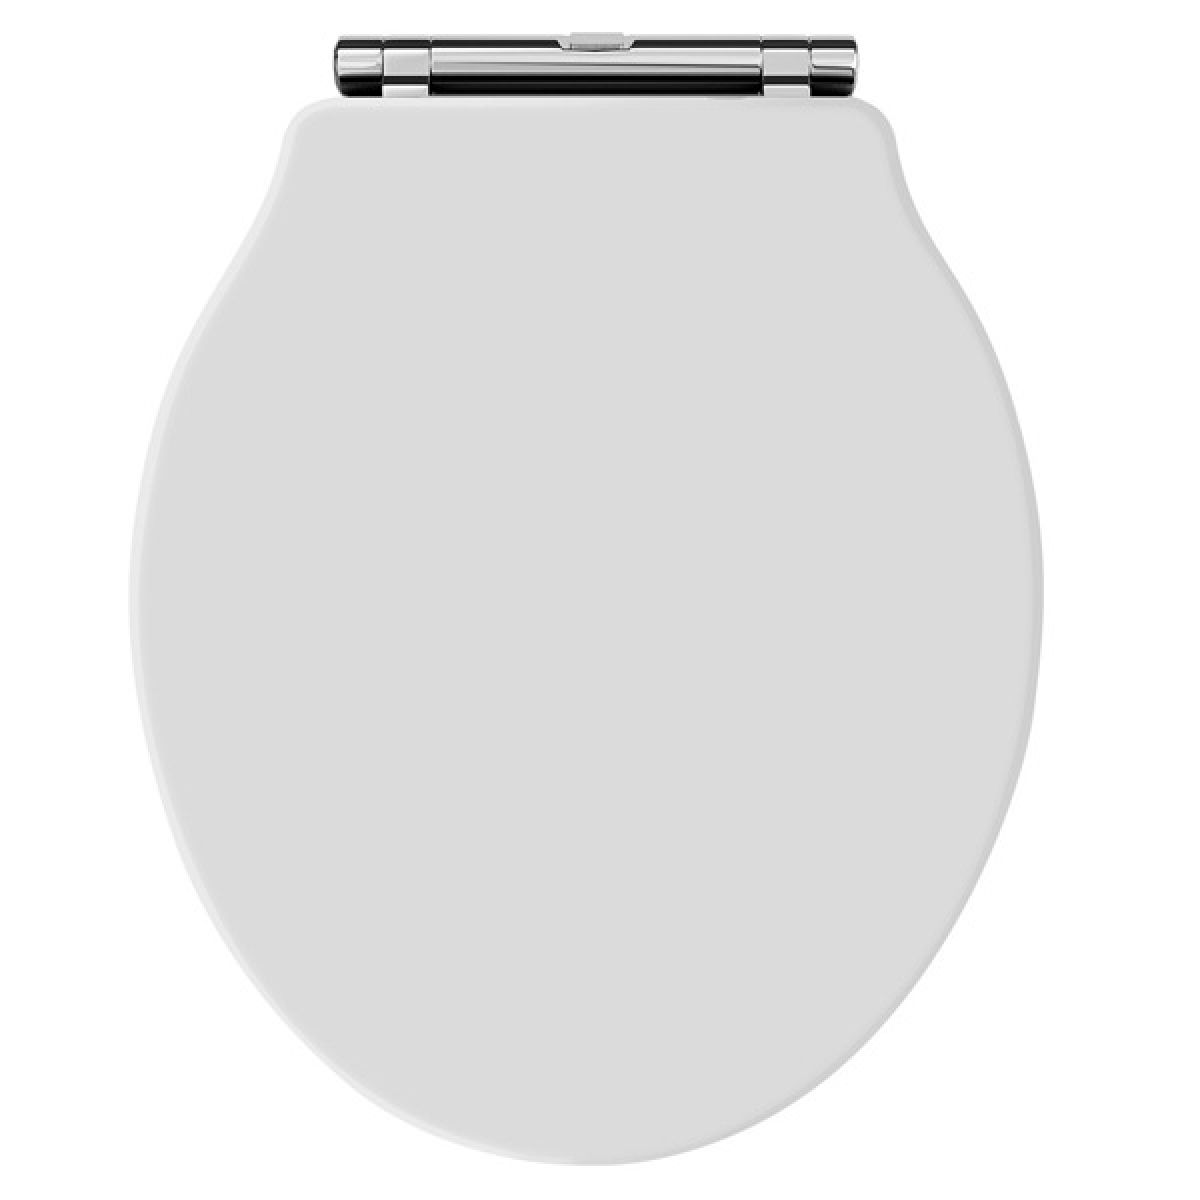 Premier Ryther White Wooden Toilet Seat